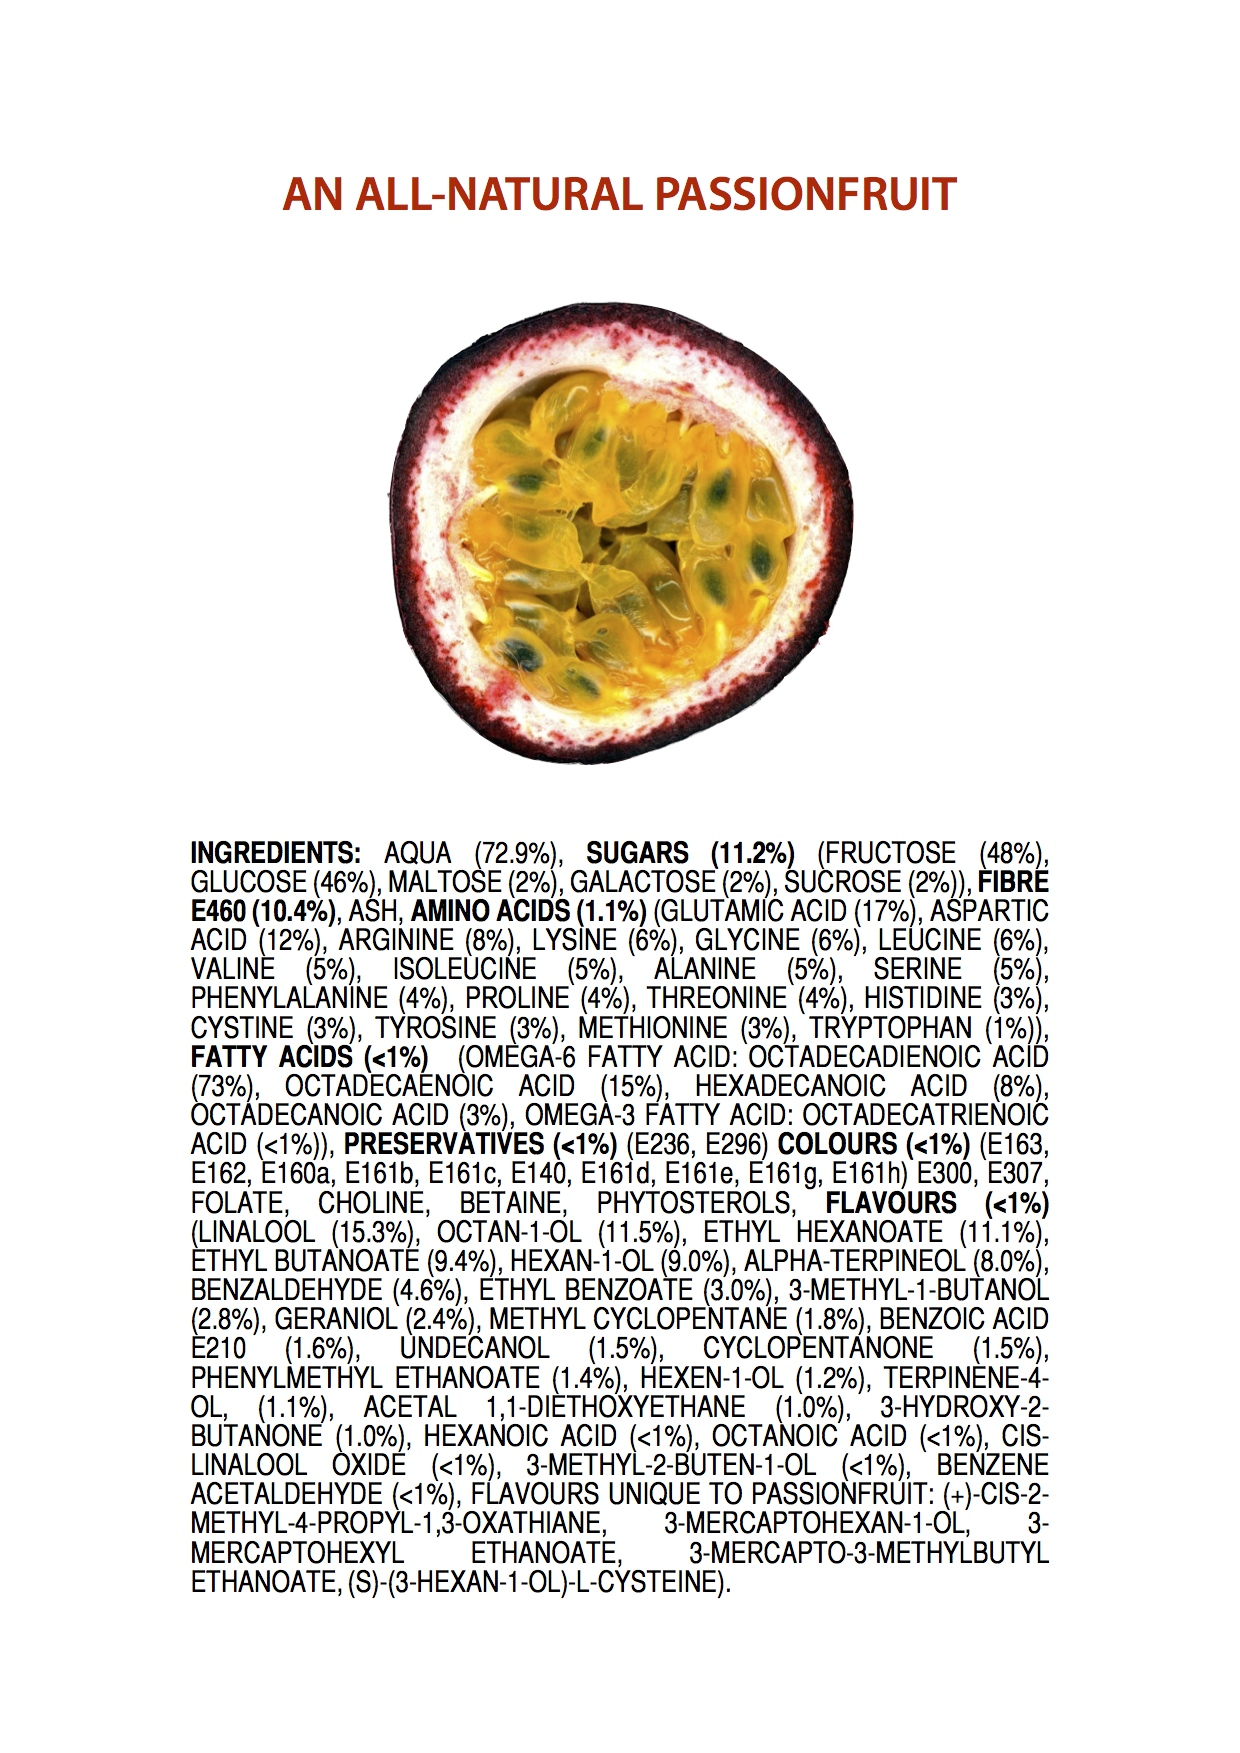 All Natural Princess Play Makeup Kit: Ingredients Of An All-Natural Passionfruit